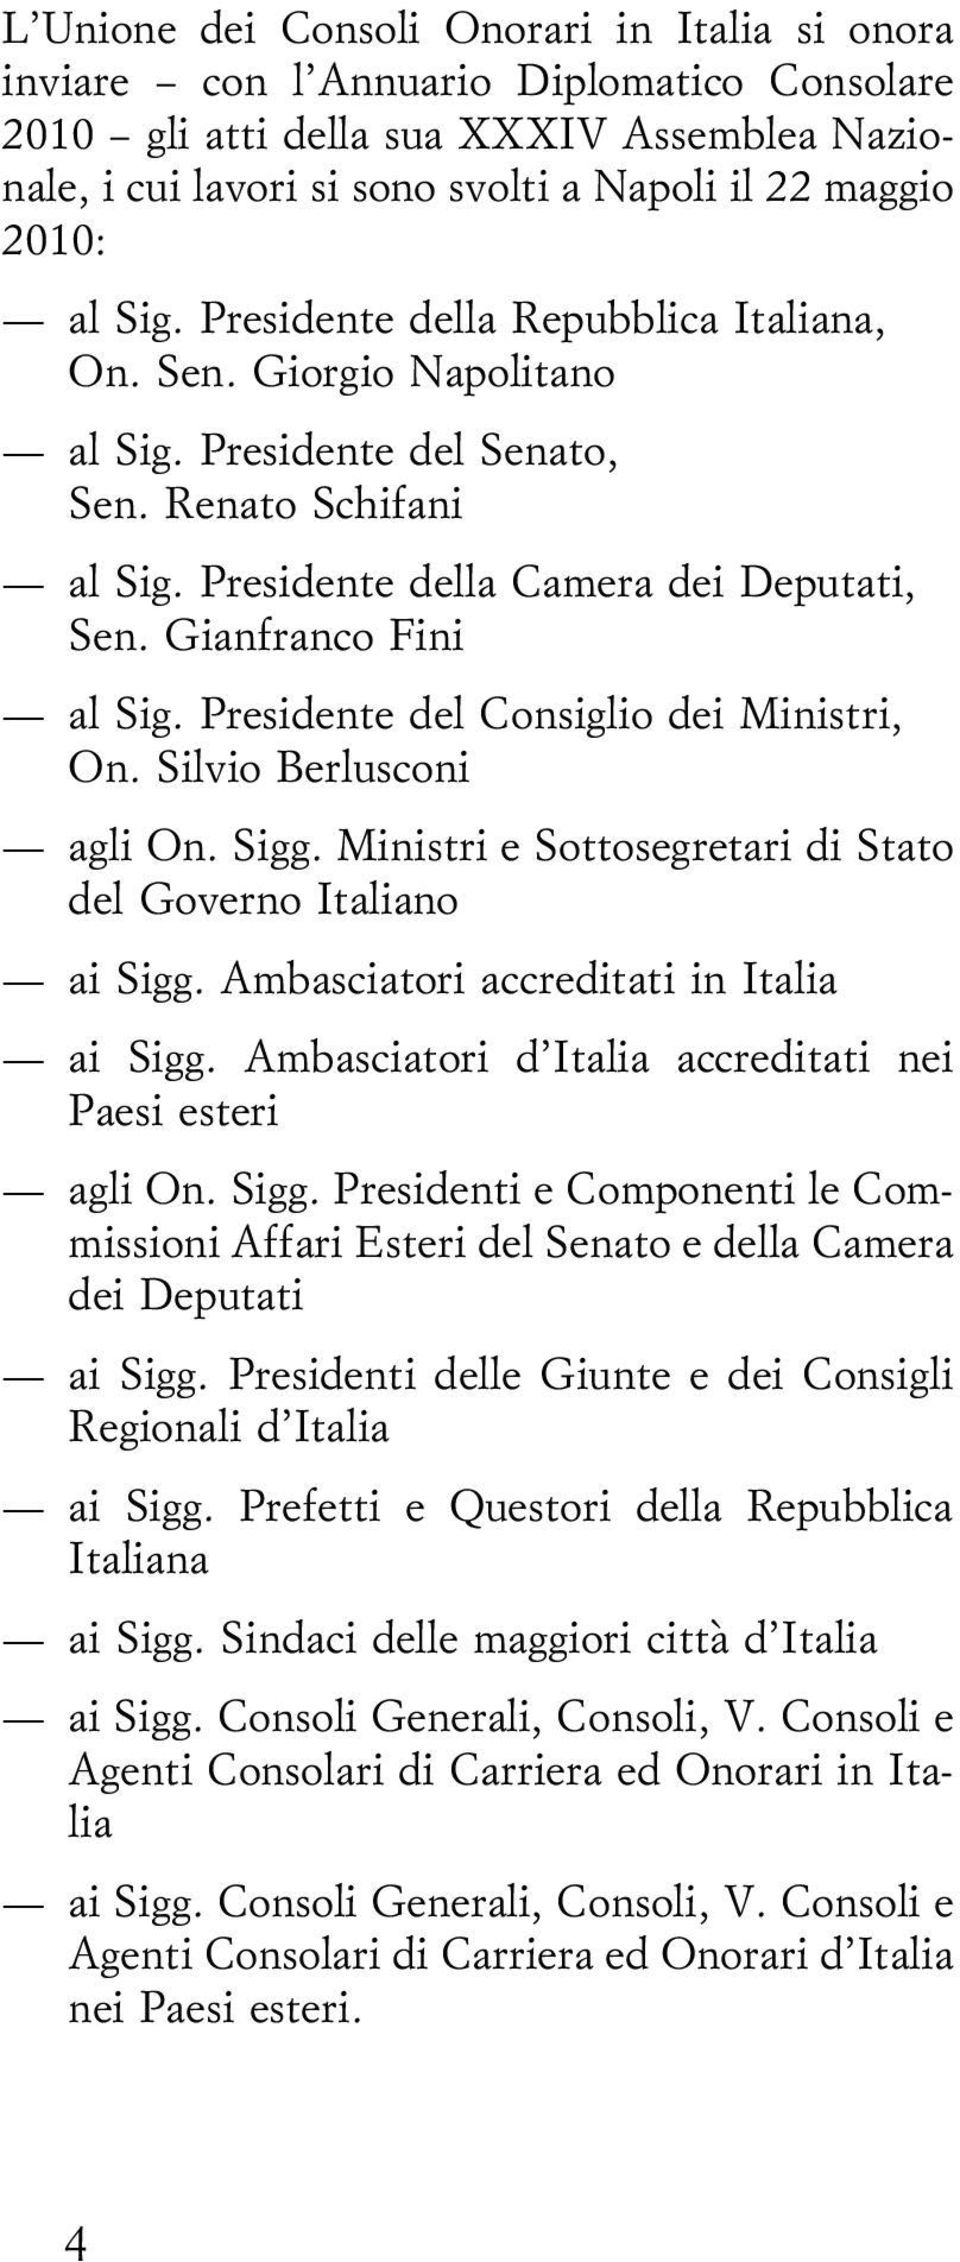 Diplomatico consolare pdf for Camera dei deputati commissioni